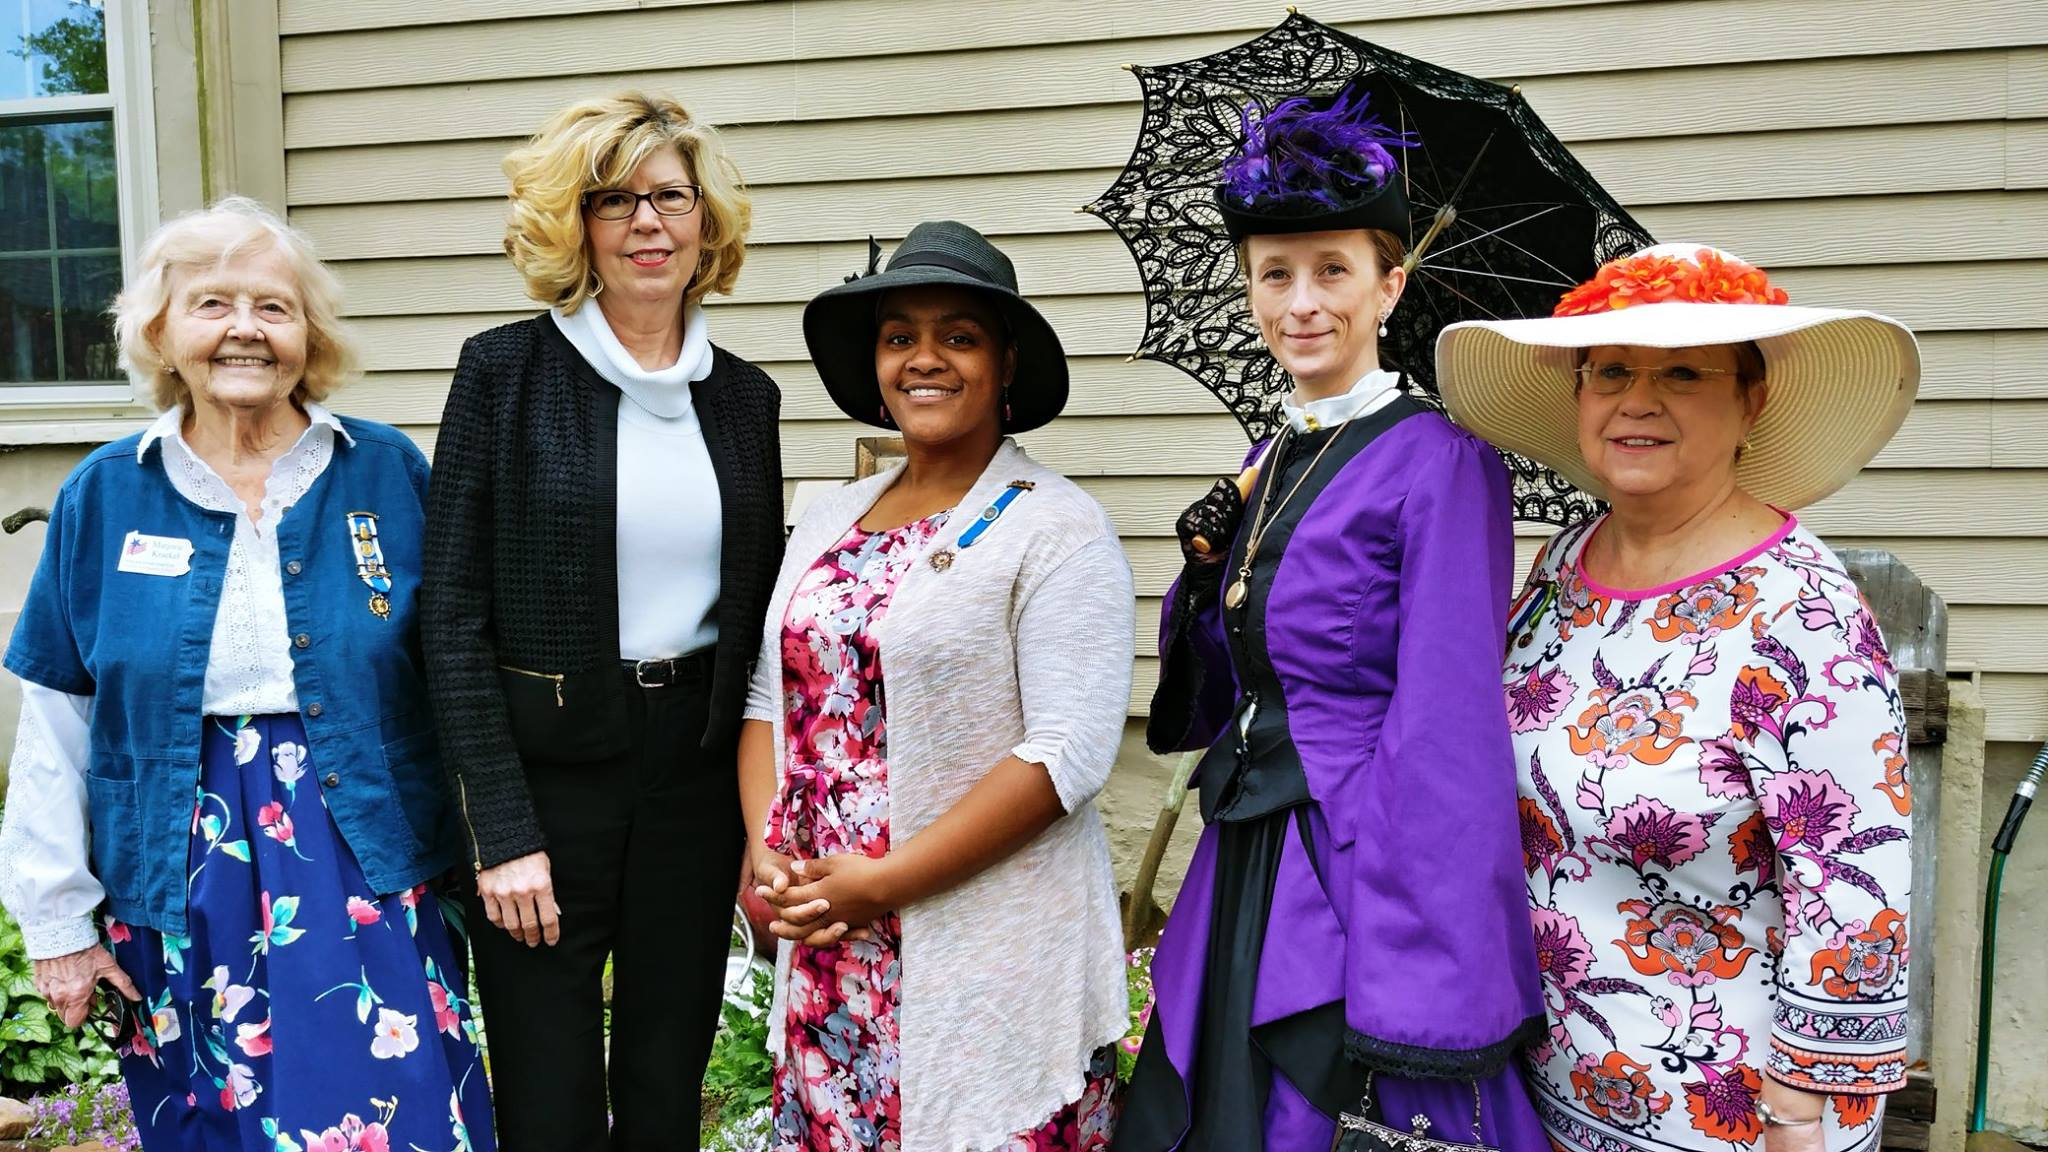 five women wearing fancy hats and attire